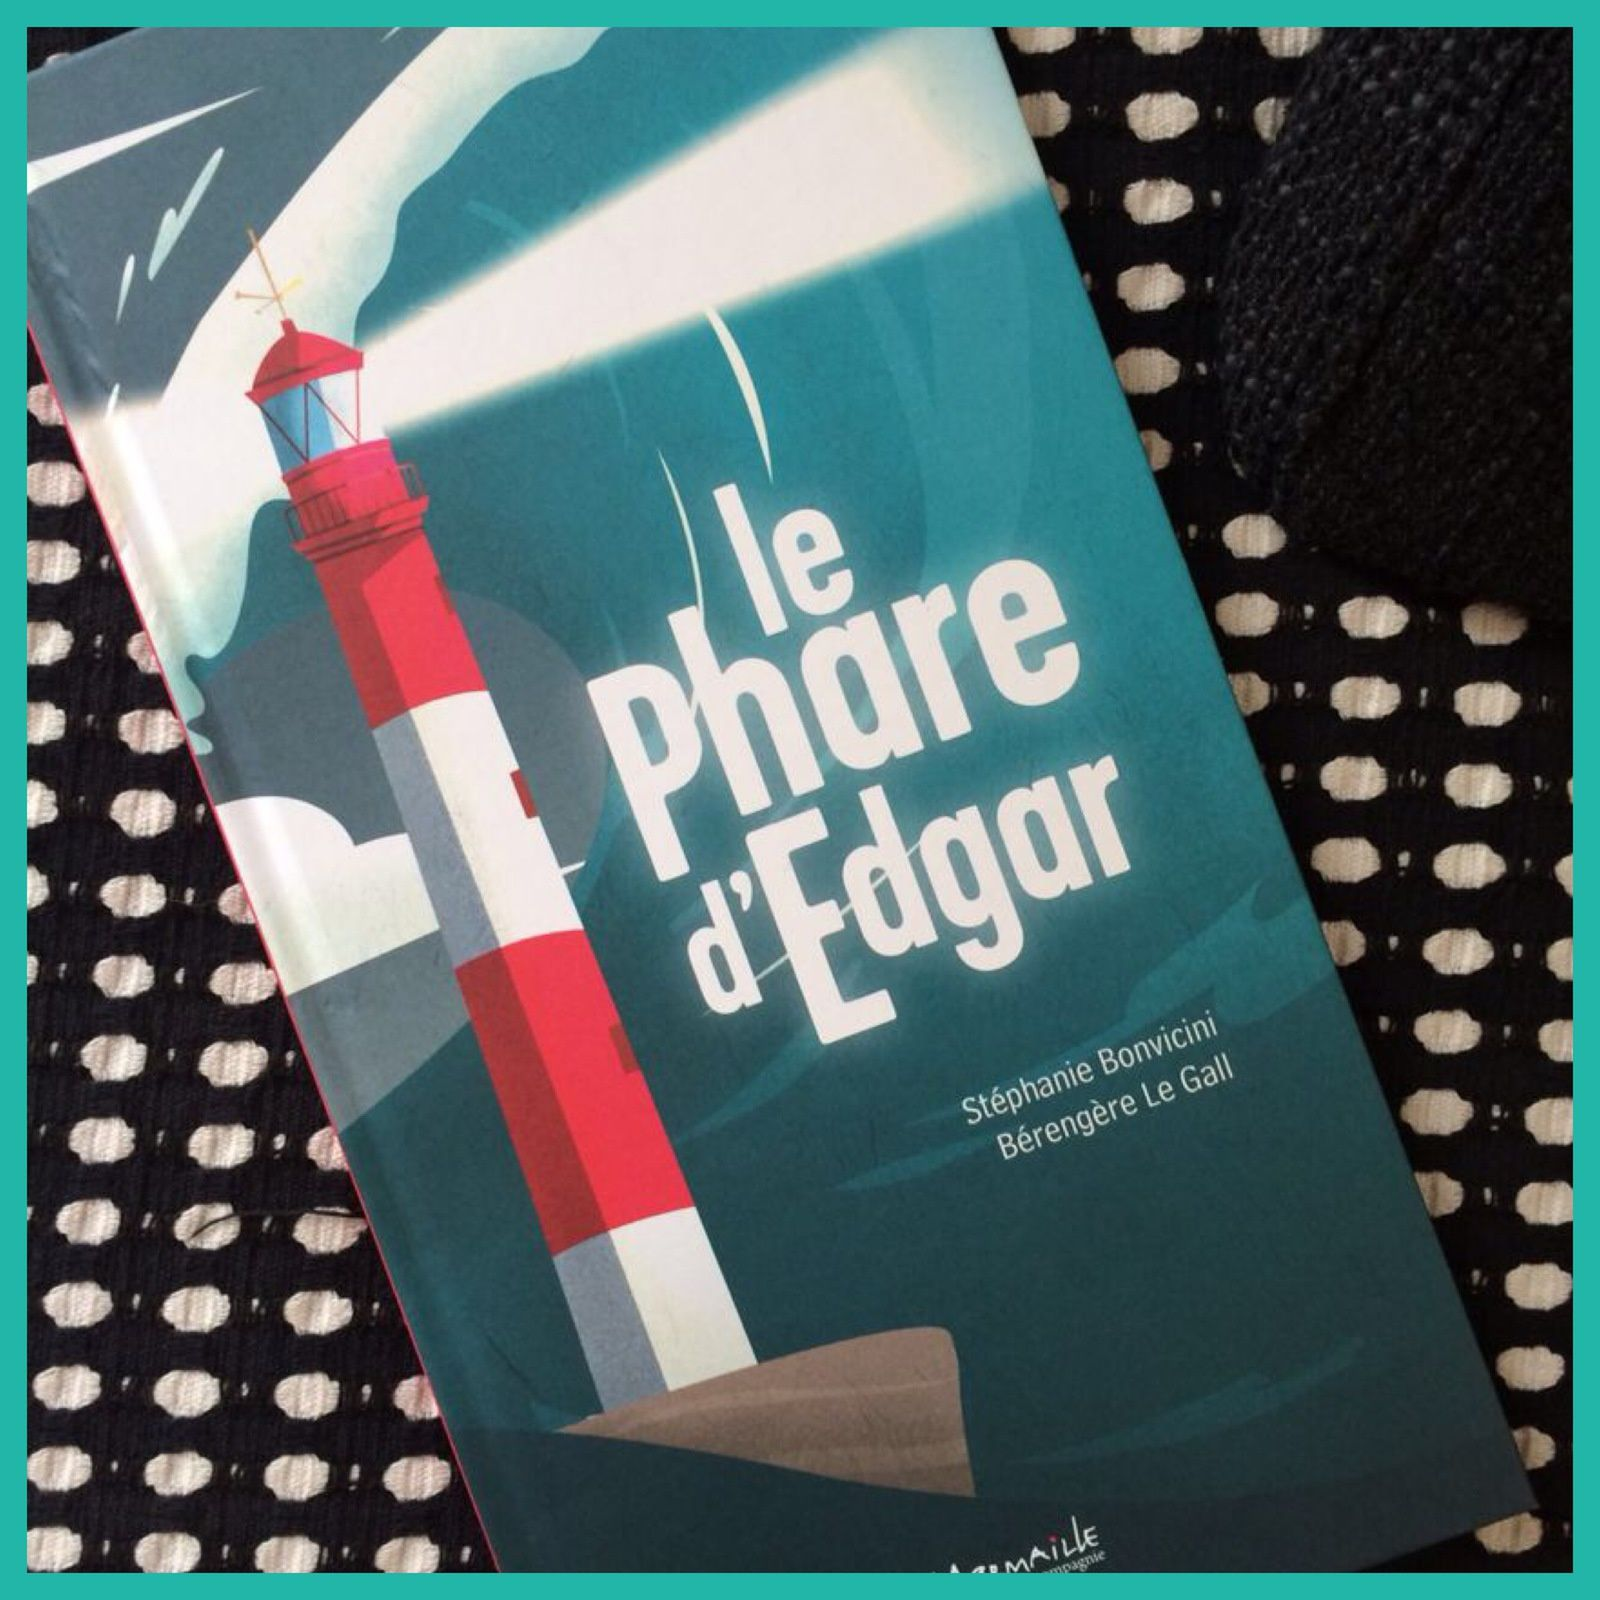 Le phare d'Edgar (giveaway inside)